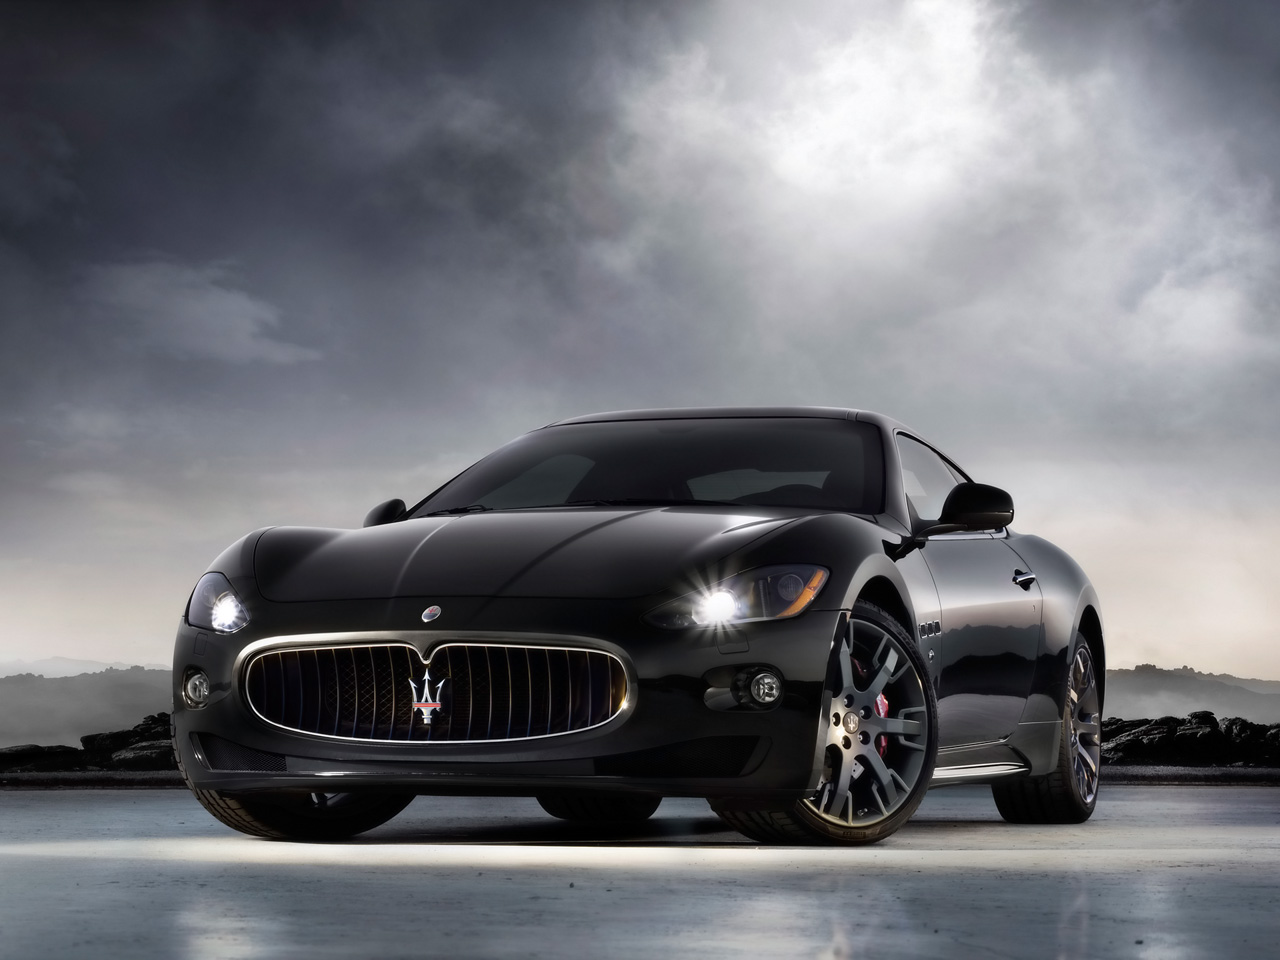 Auto Wallpapers Maserati Gran Turismo